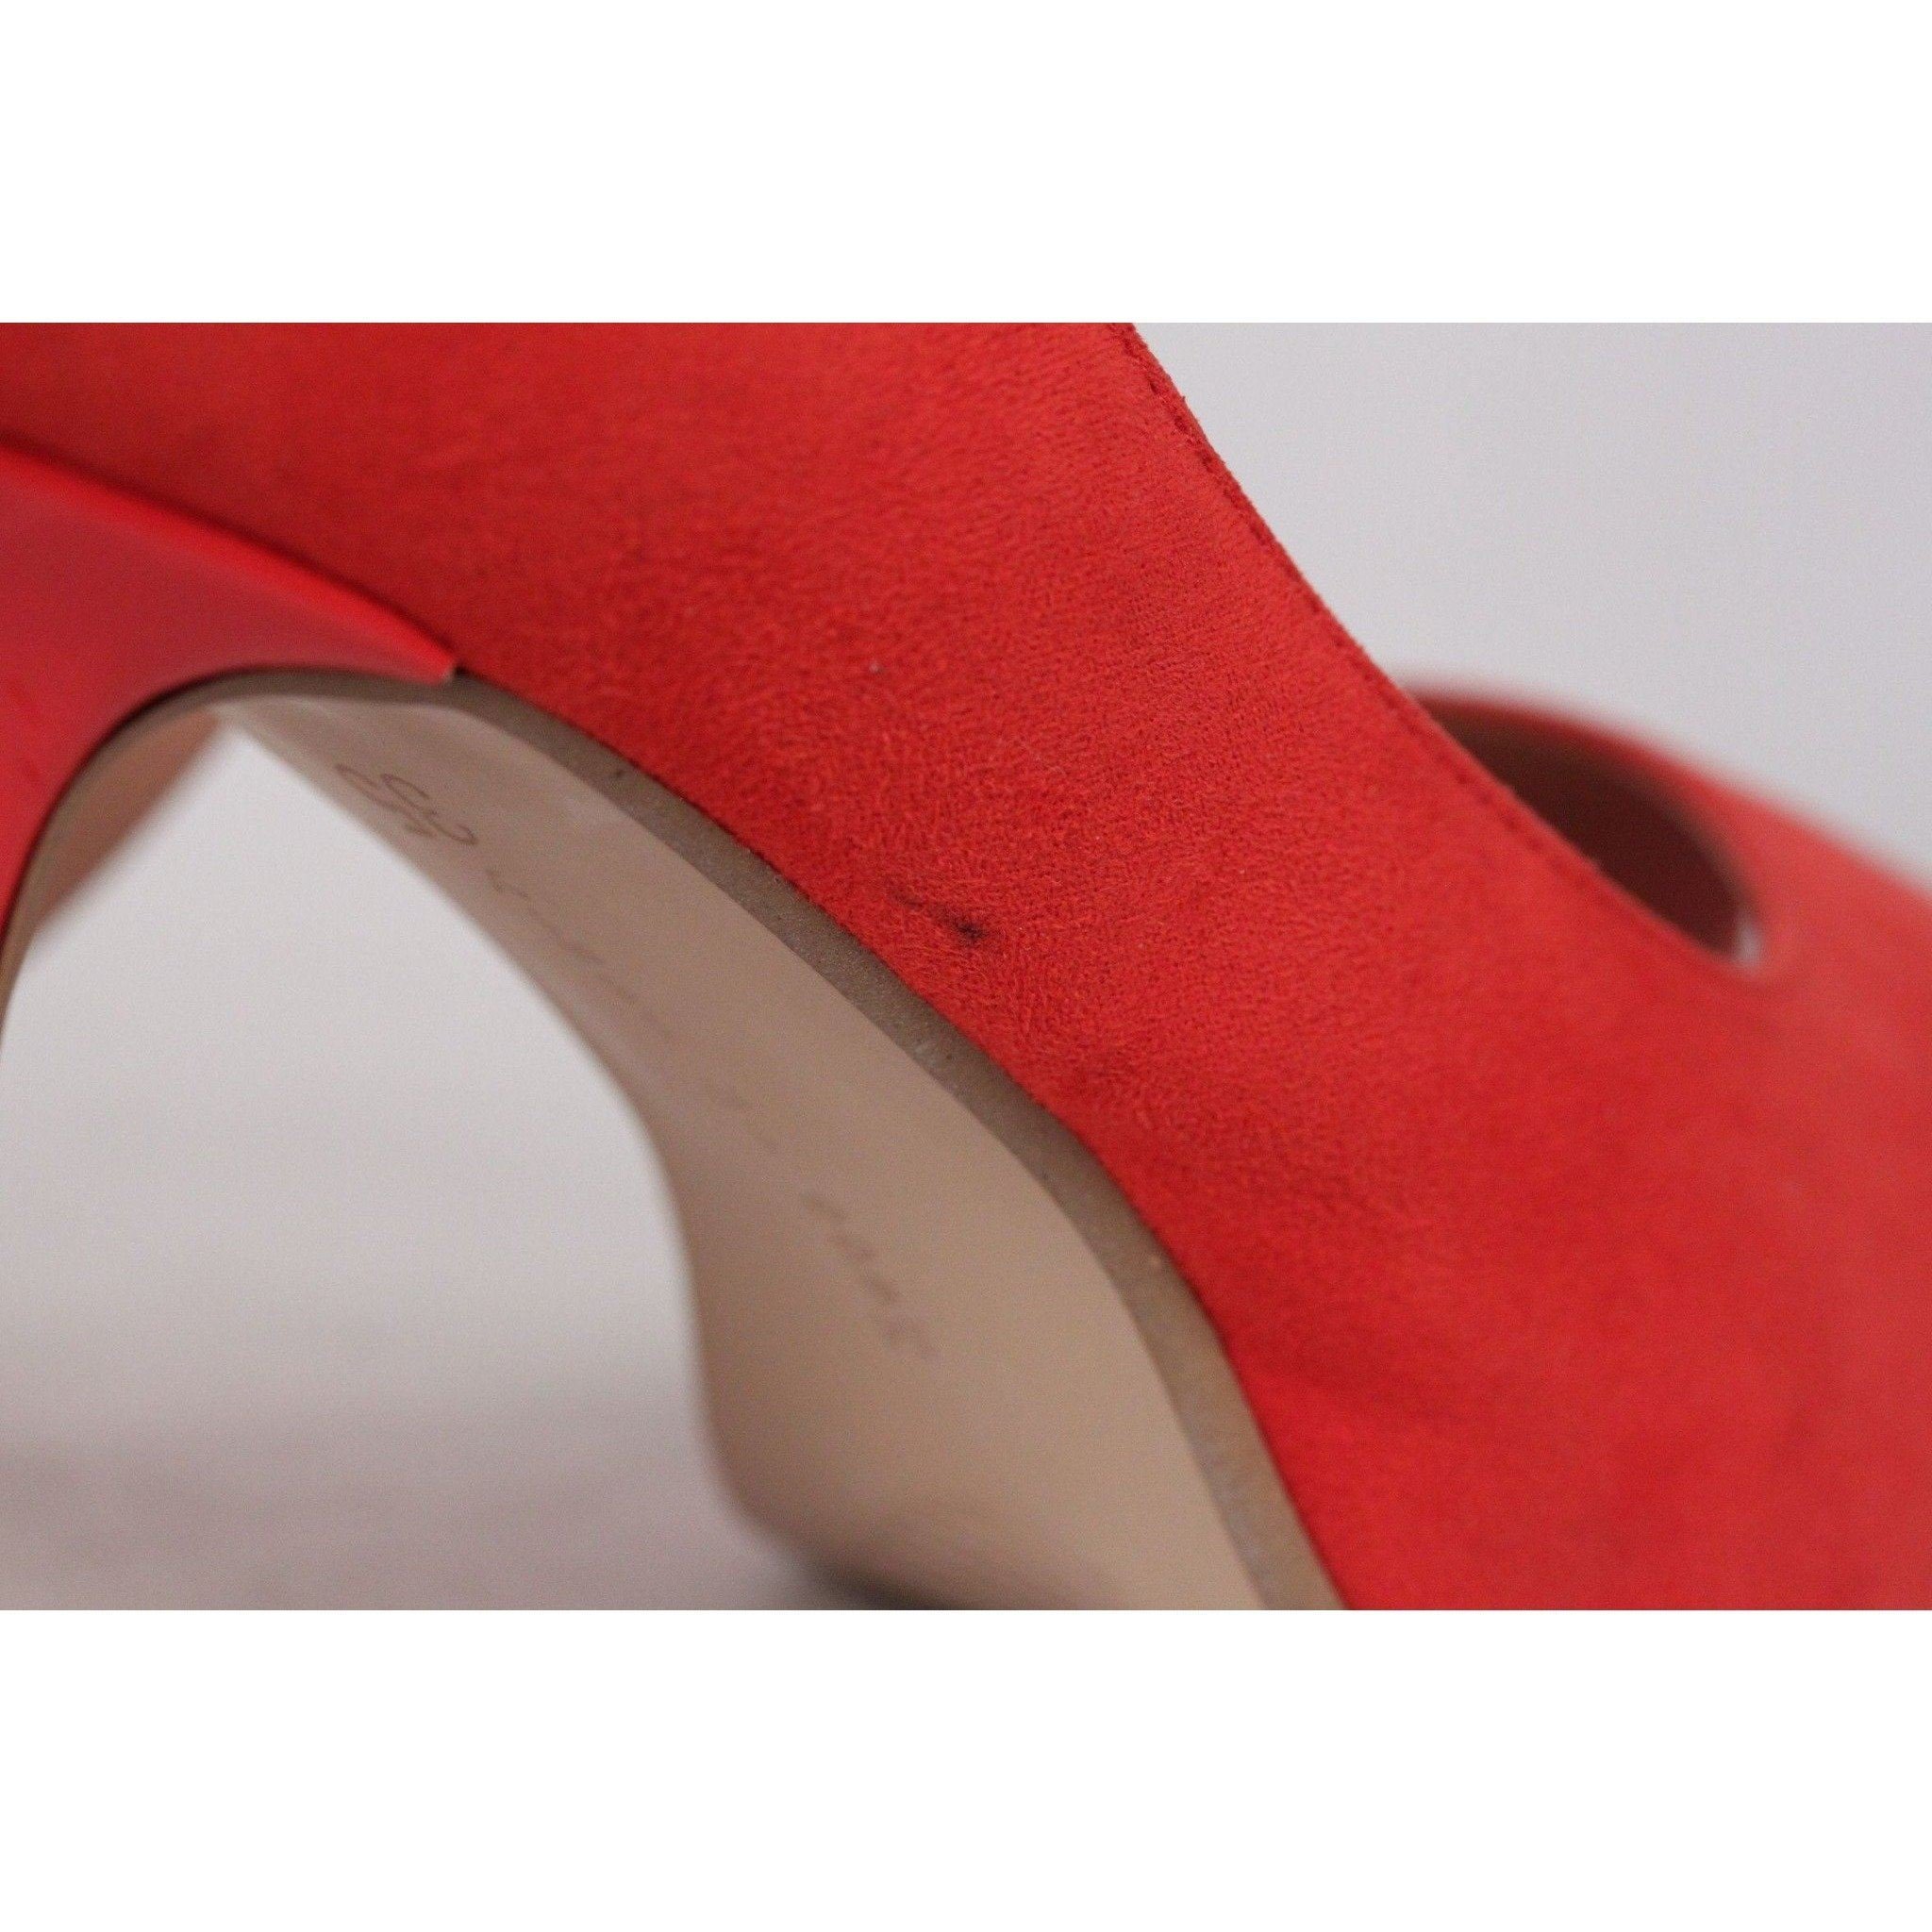 d79a9f40162 Danielle Red Peep Toe Heels Open Toe Pumps Shoes Size 35 Opherty   Ciocci